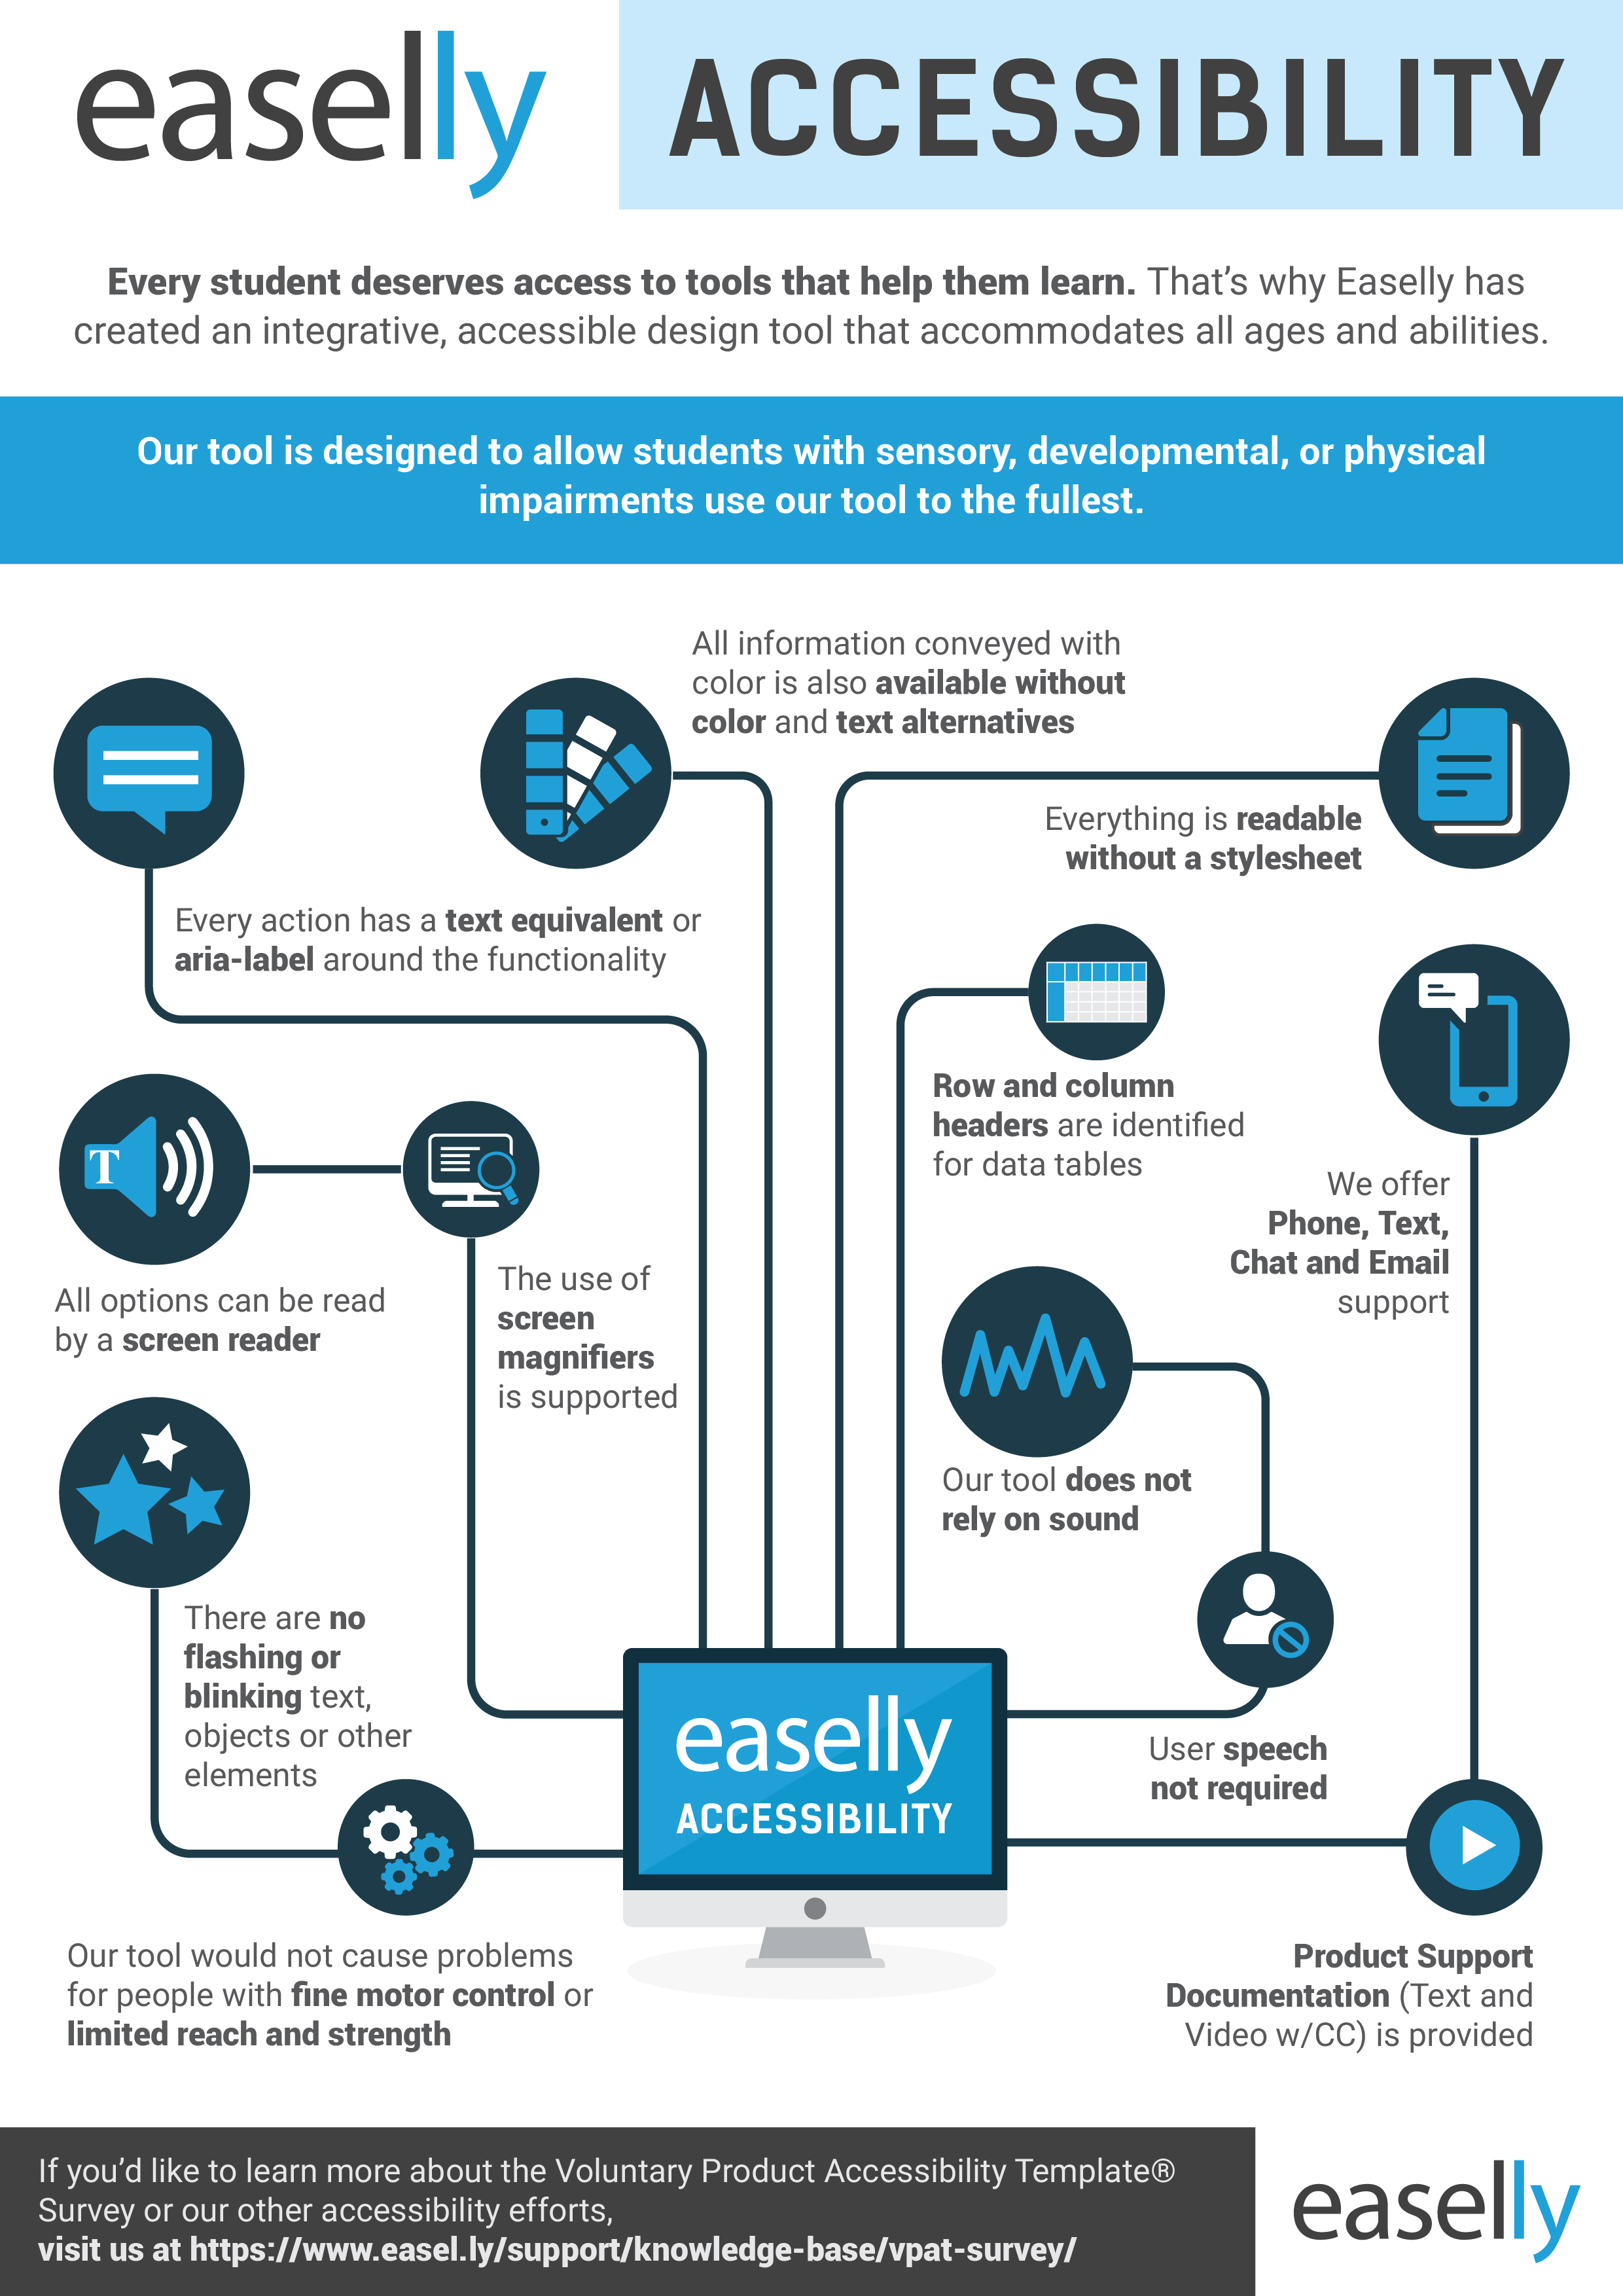 Easelly\'s Focus on Accessibility - VPAT Survey